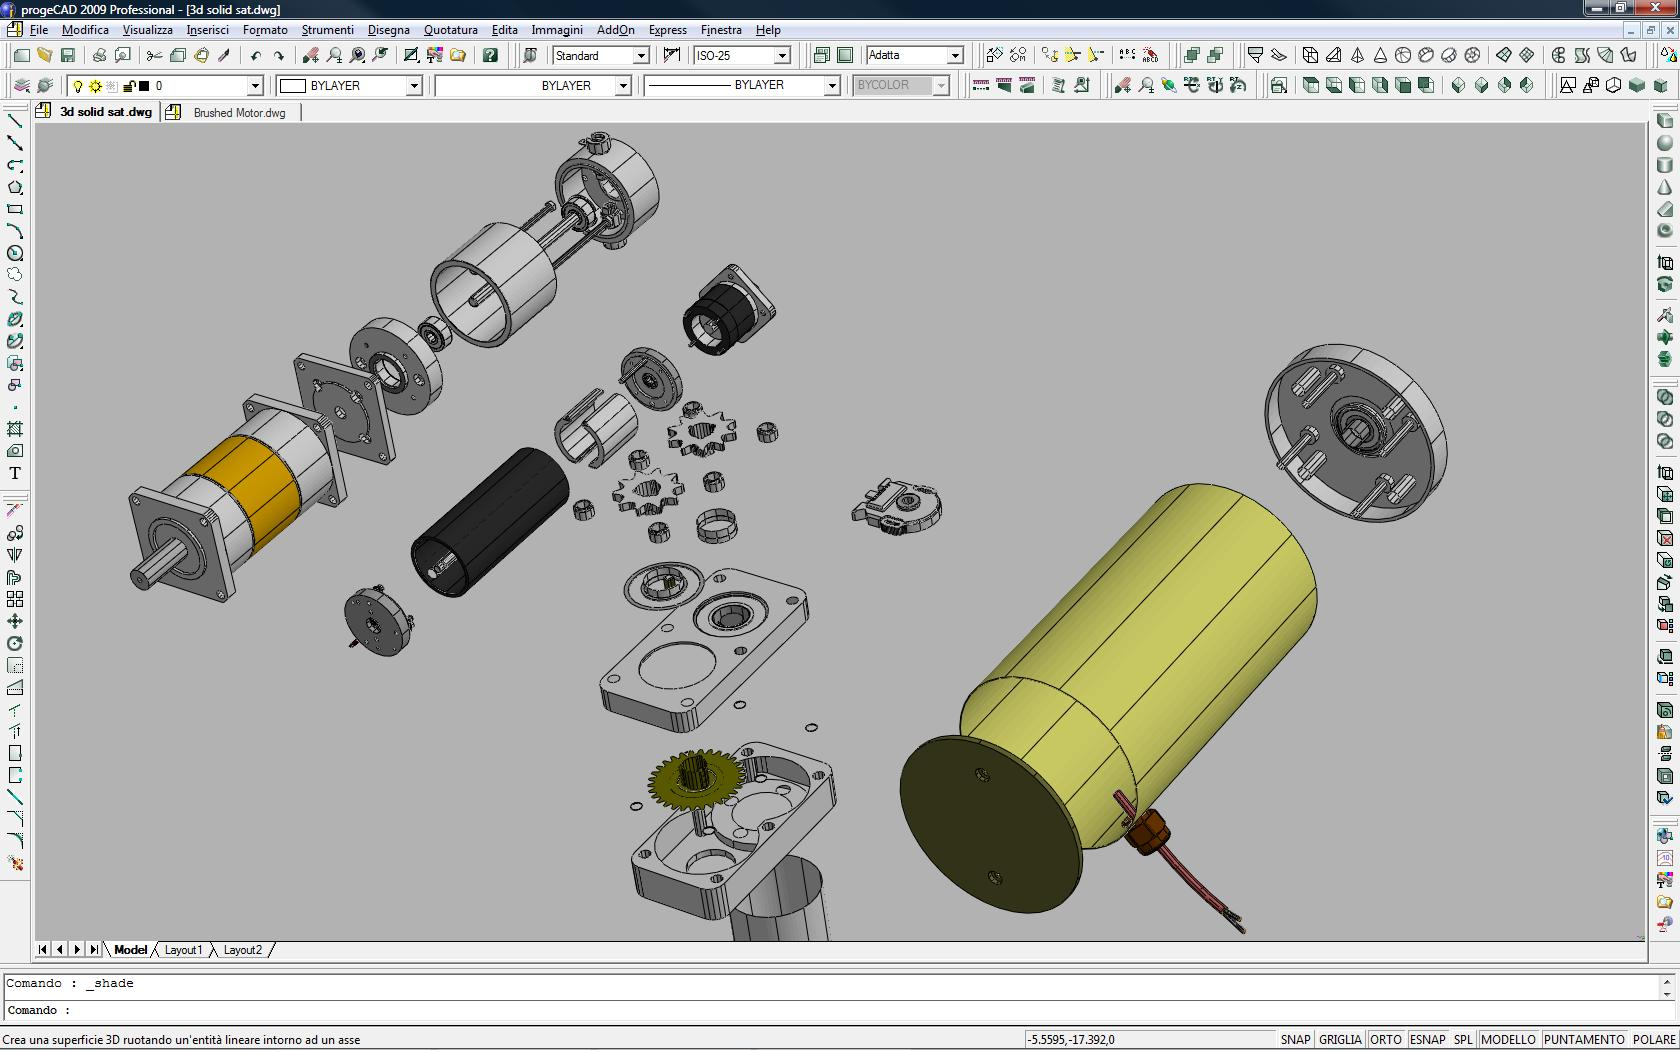 no pdf import button in cad 2016